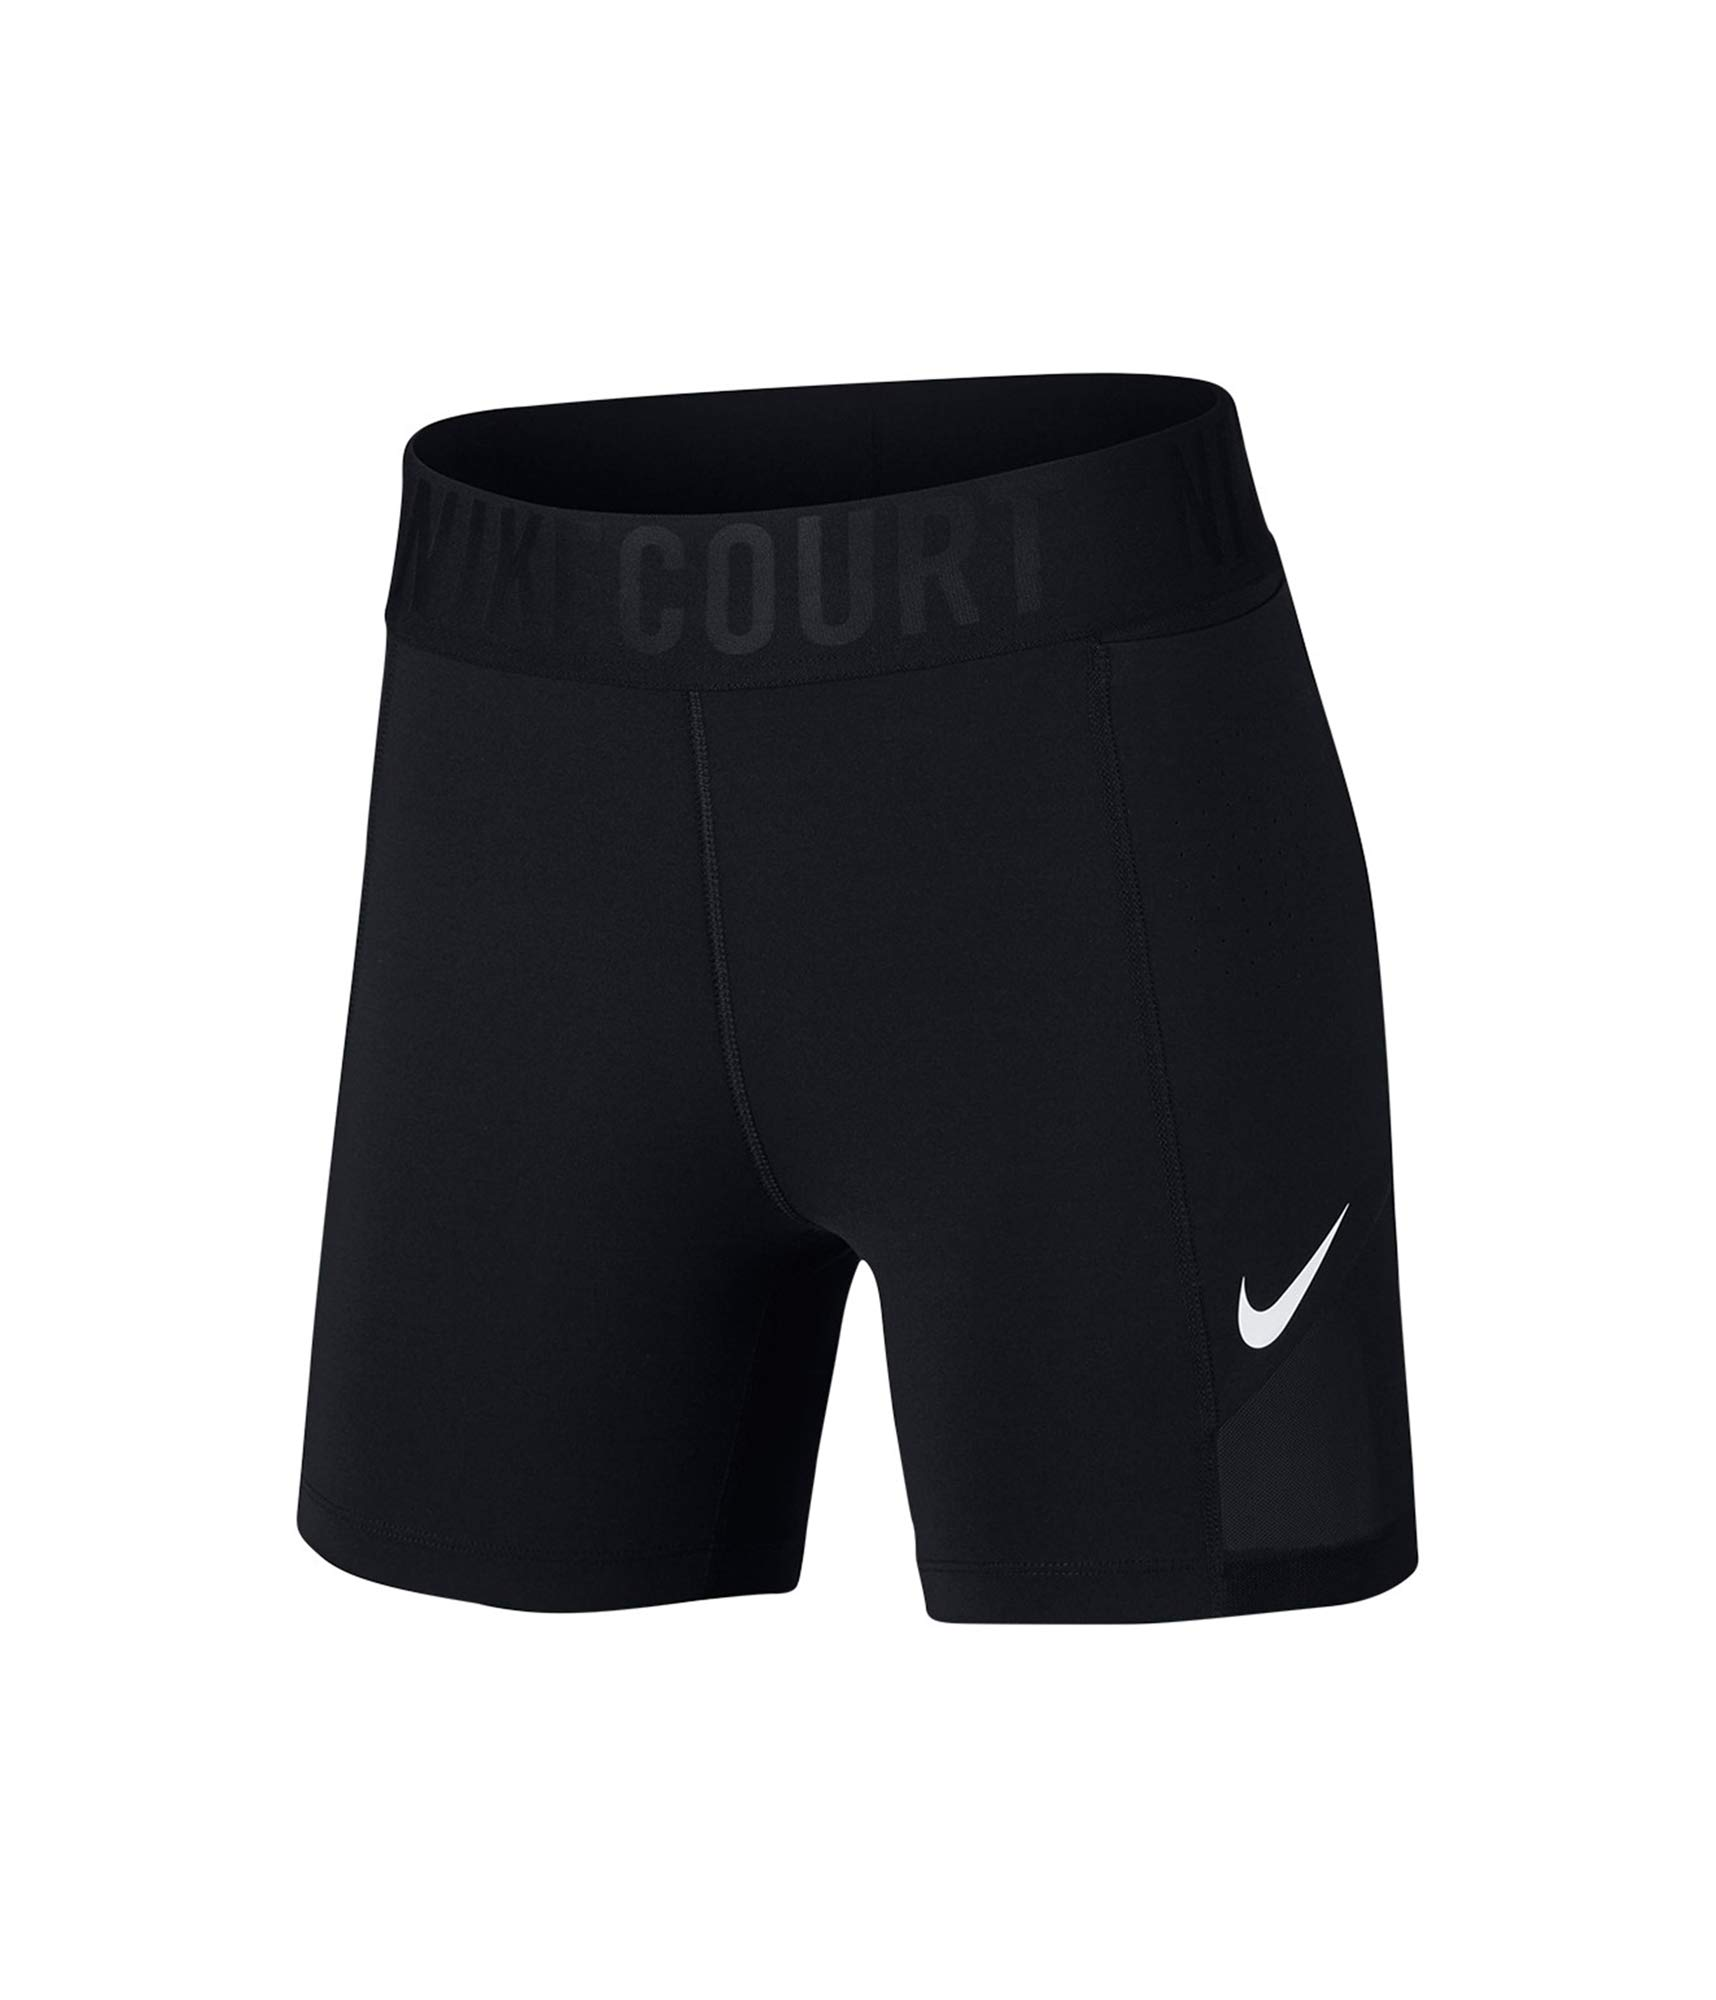 Nike Women's Court Power Tennis Shorts Black/White Small